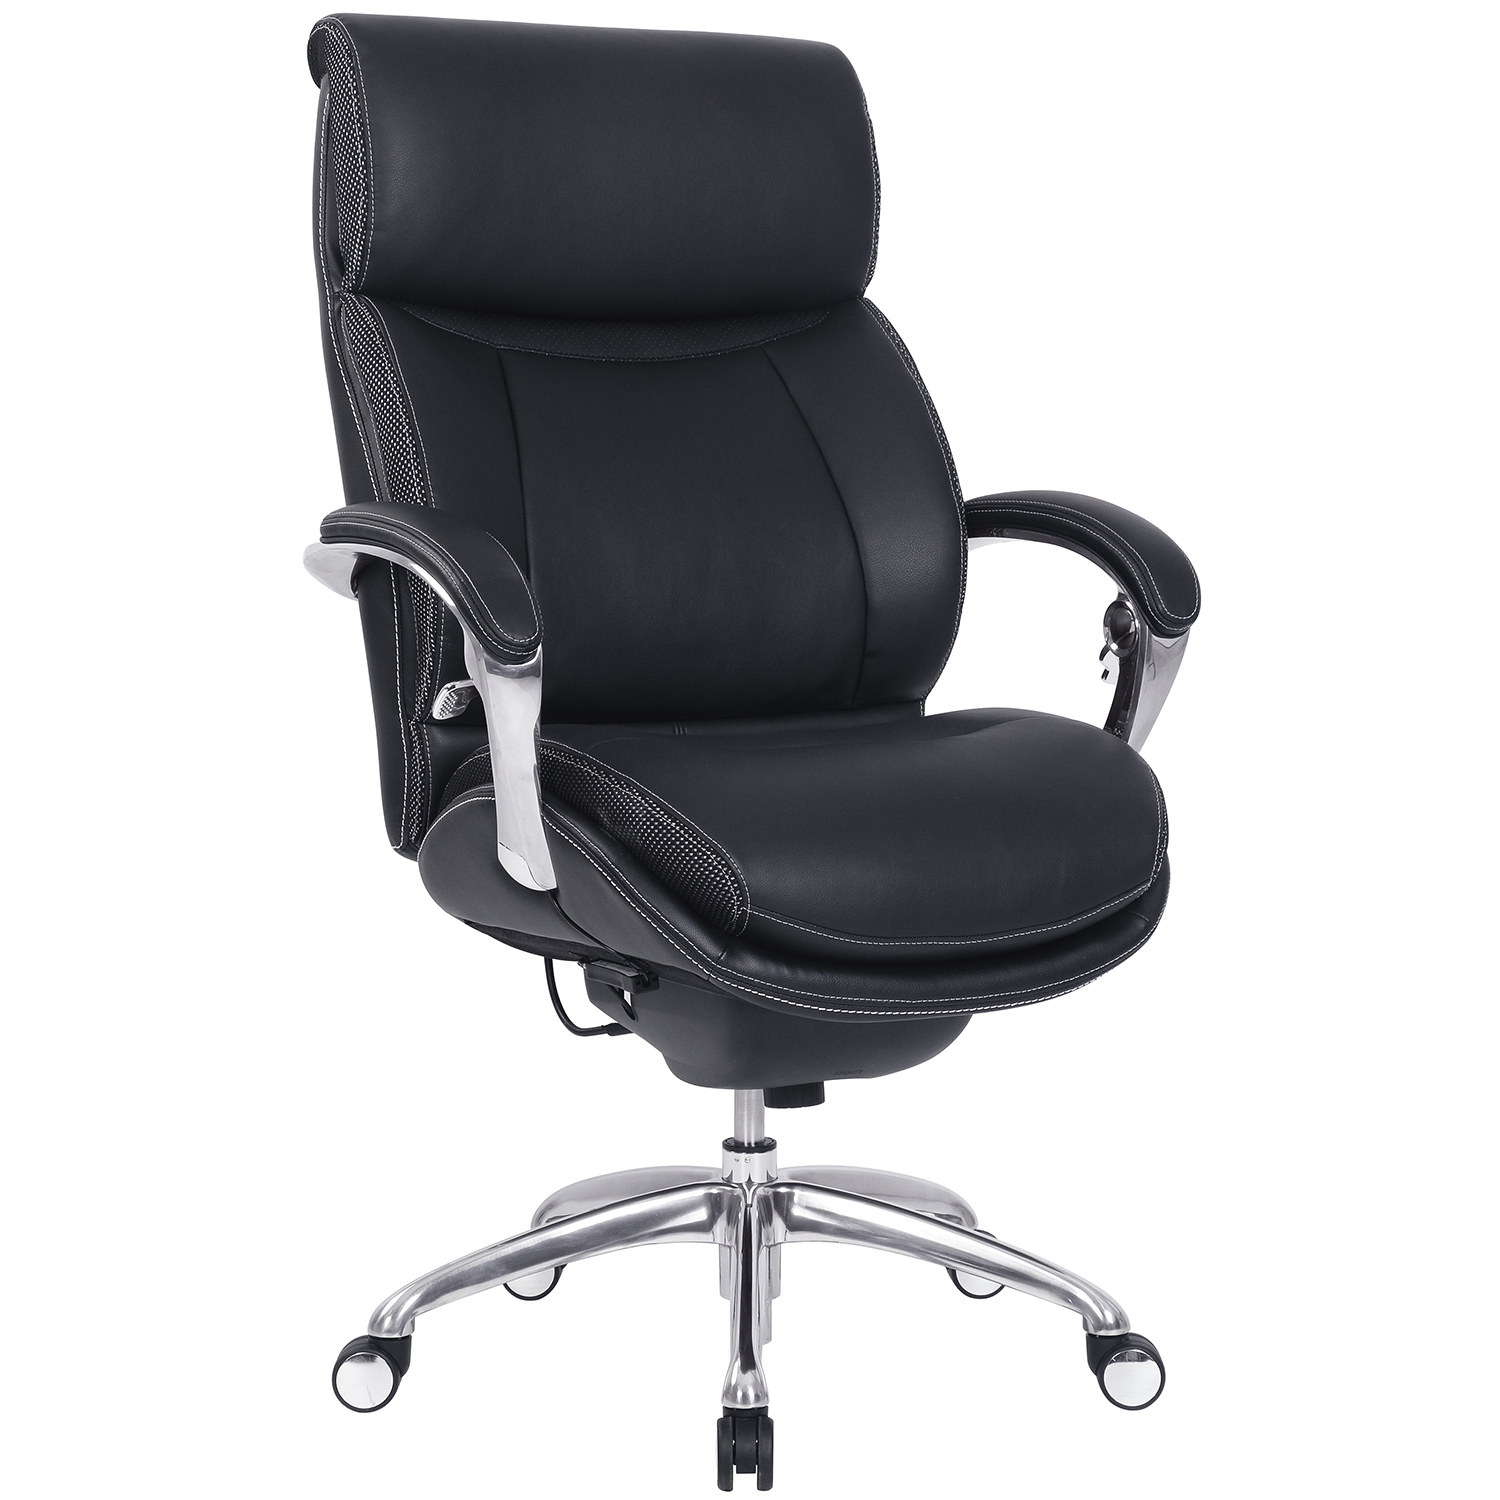 Workpro Chair Serta Icomfort I5000 Series Executive Chair Grand And Toy